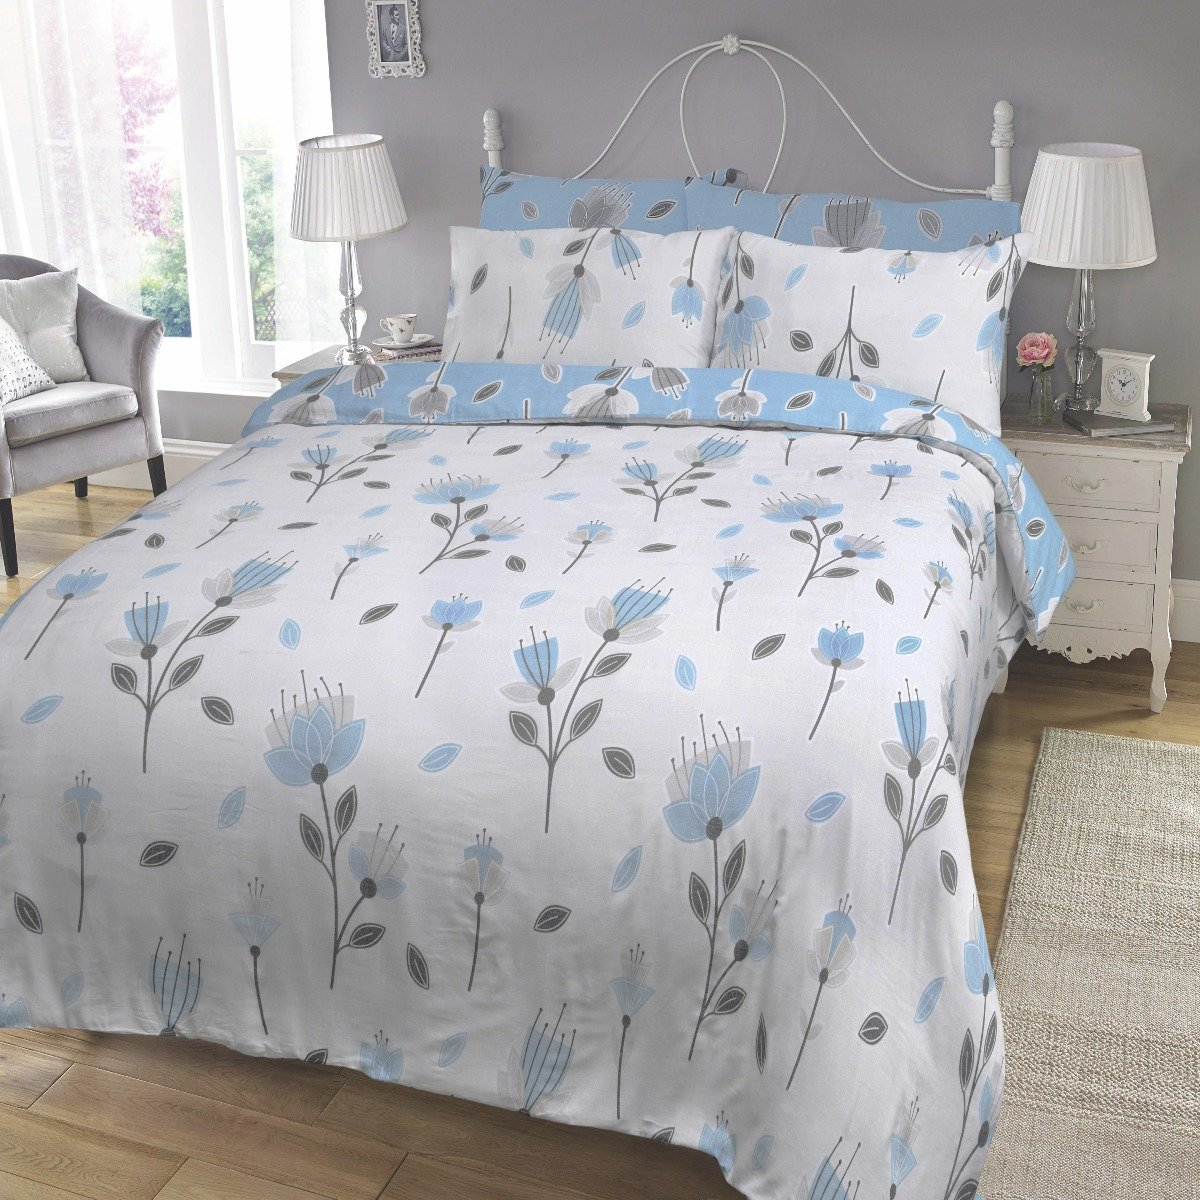 Geo Floral Blue Bedding - Reversible Duvet Cover and Pillowcase Set